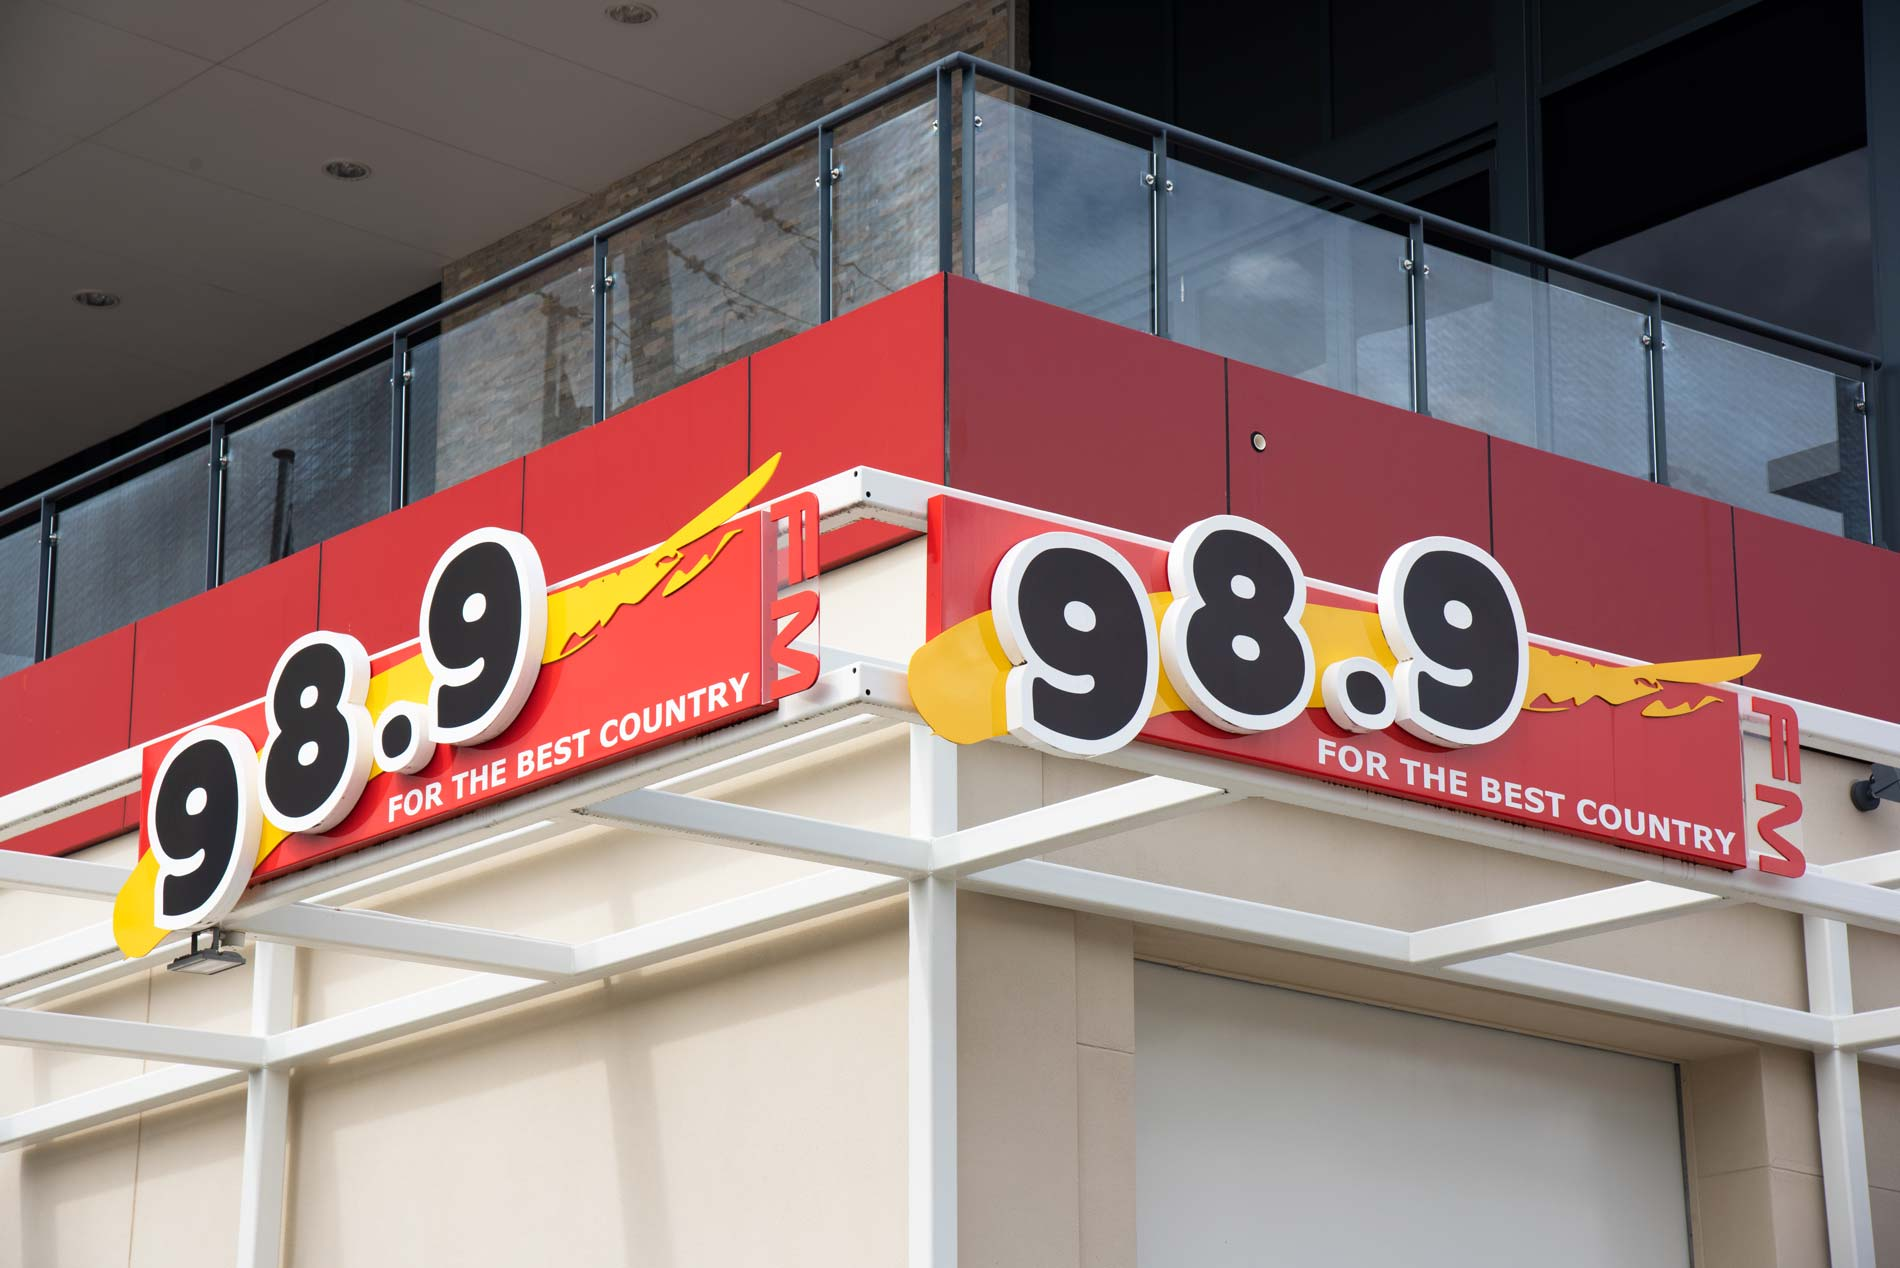 Exterior view of 989 FM radio station